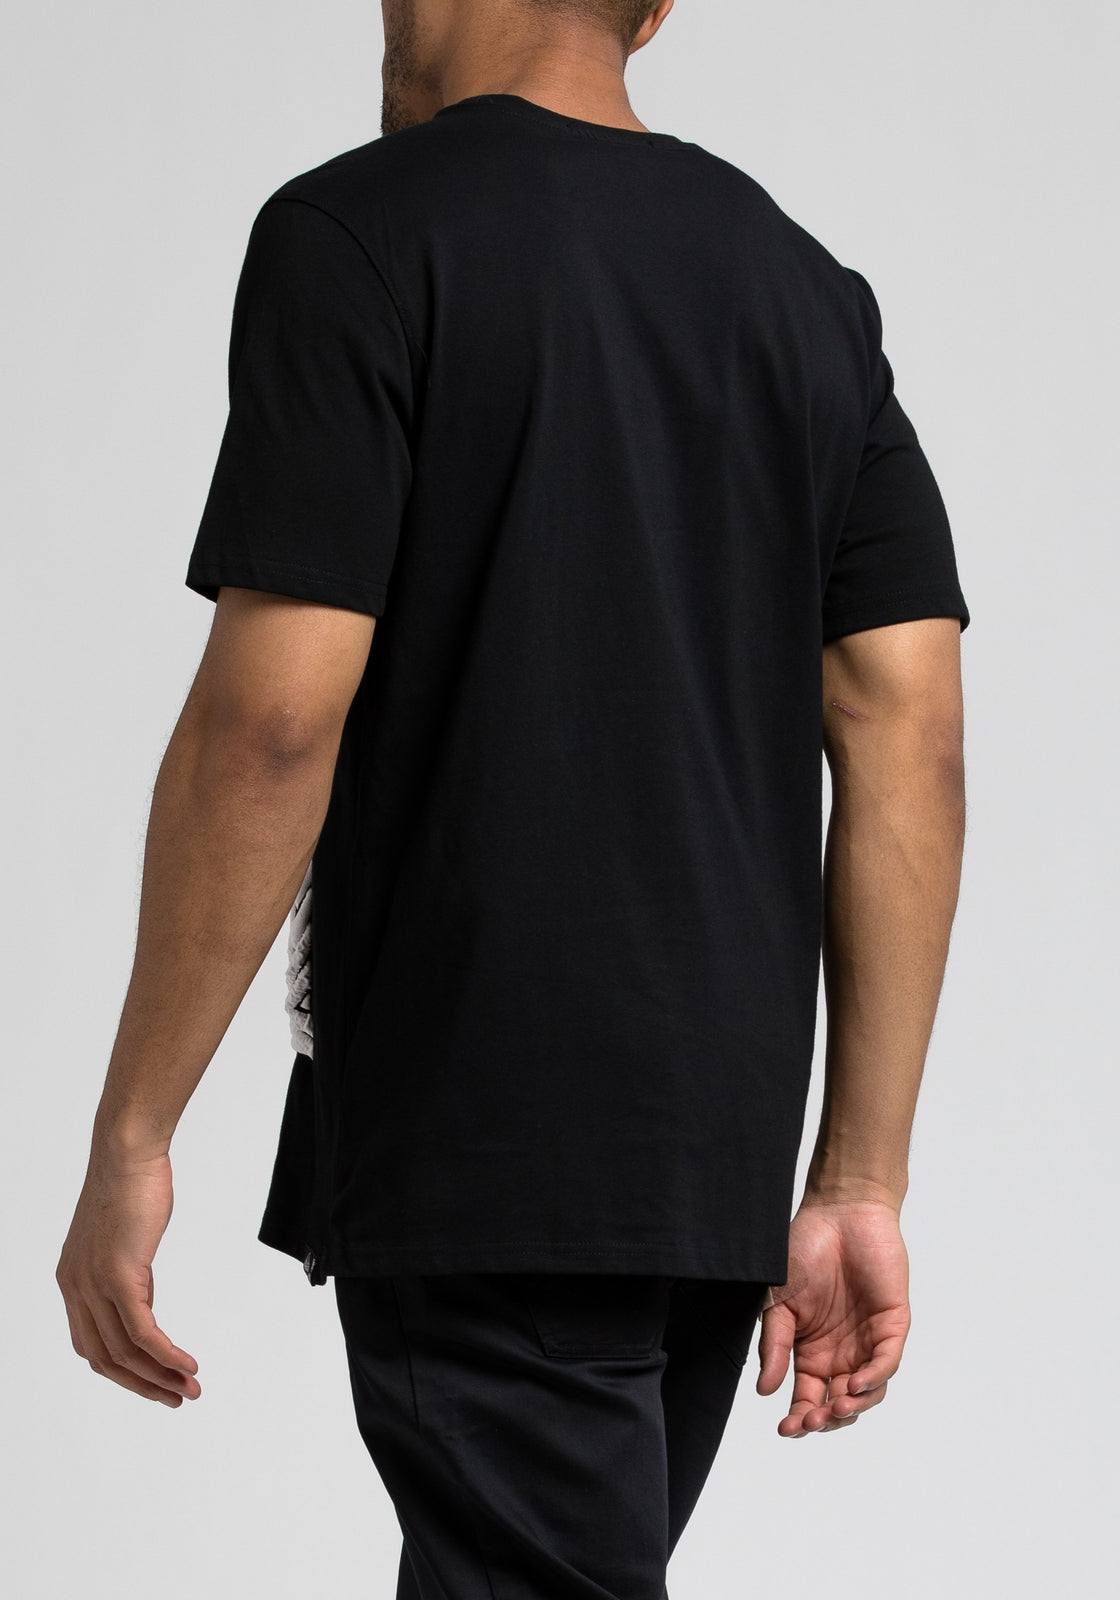 Pattern Pyramid Tee - Color: Black